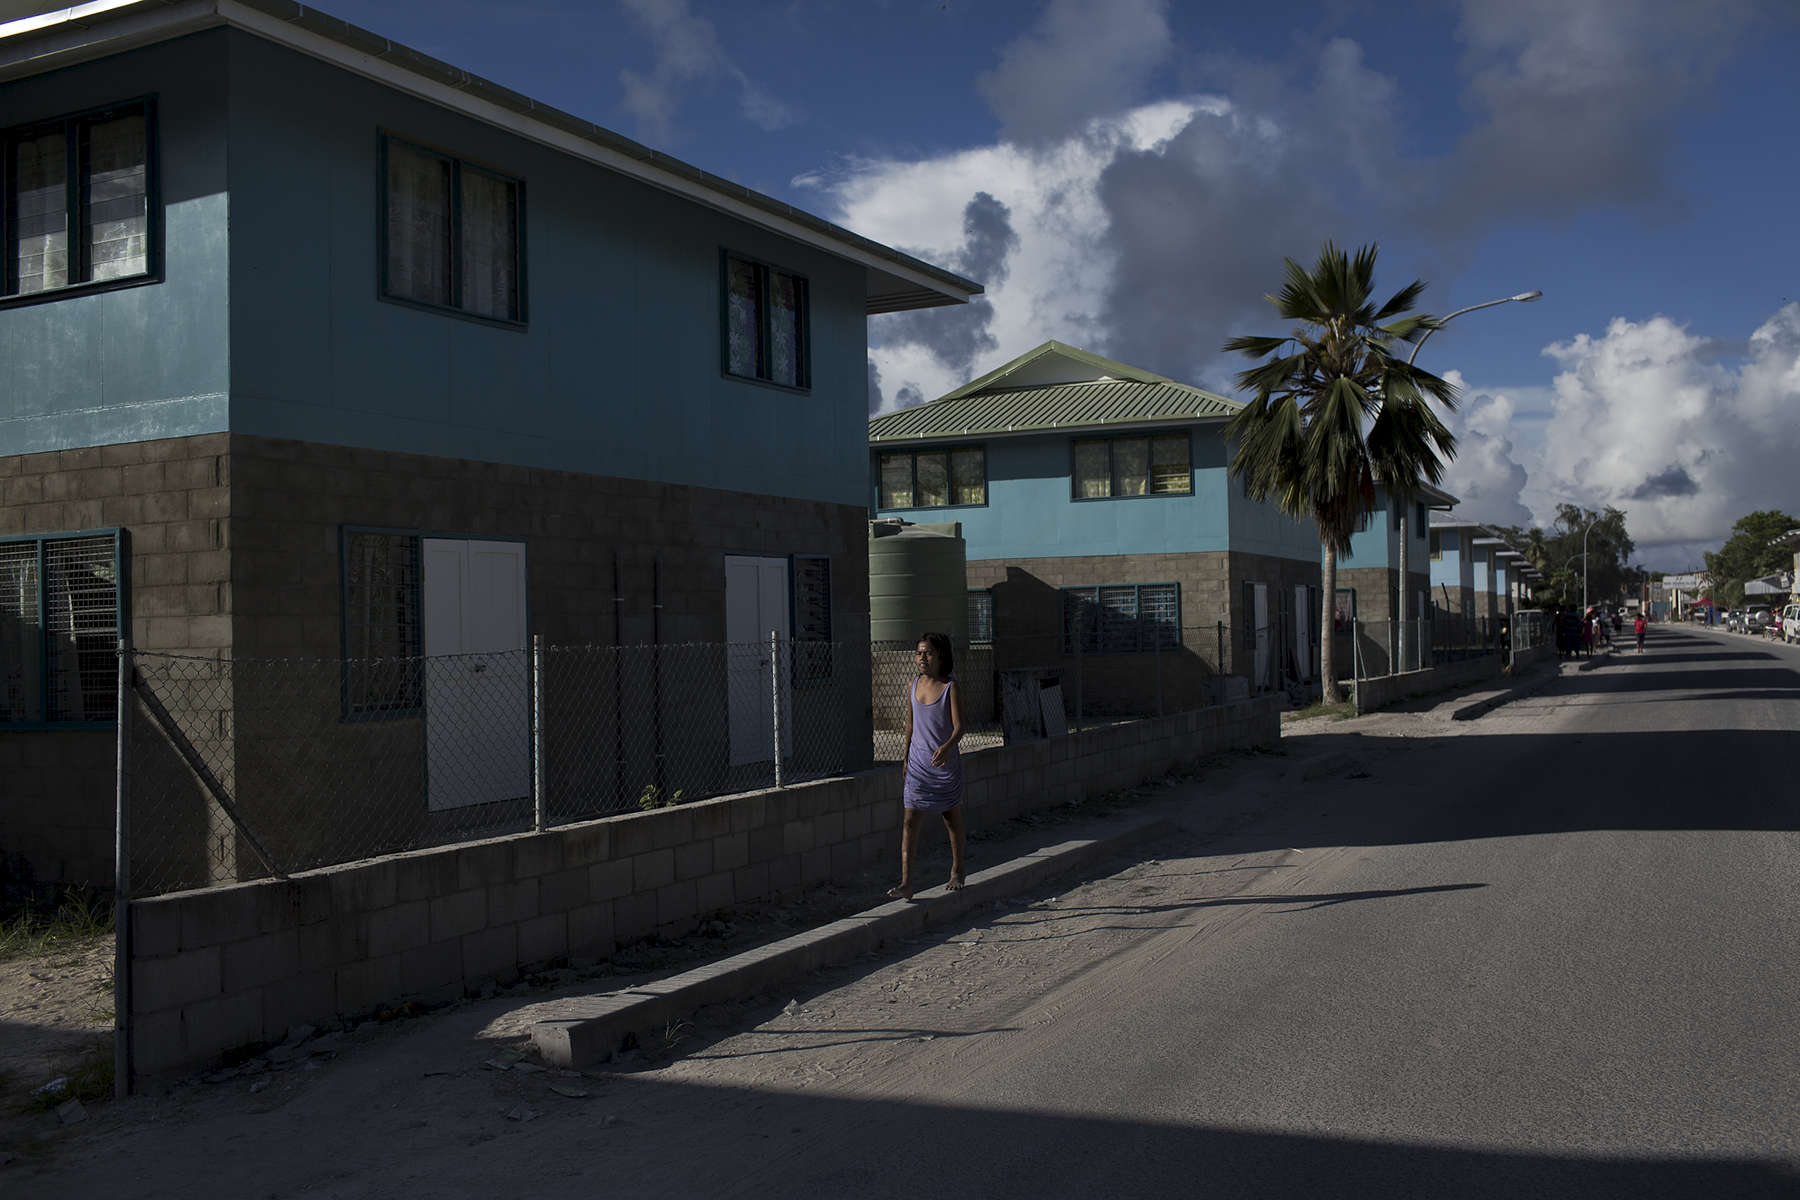 A young girl walks past recently built houses in Betio which is the largest township of Kiribati's capital city, South Tarawa, and the country's main port.